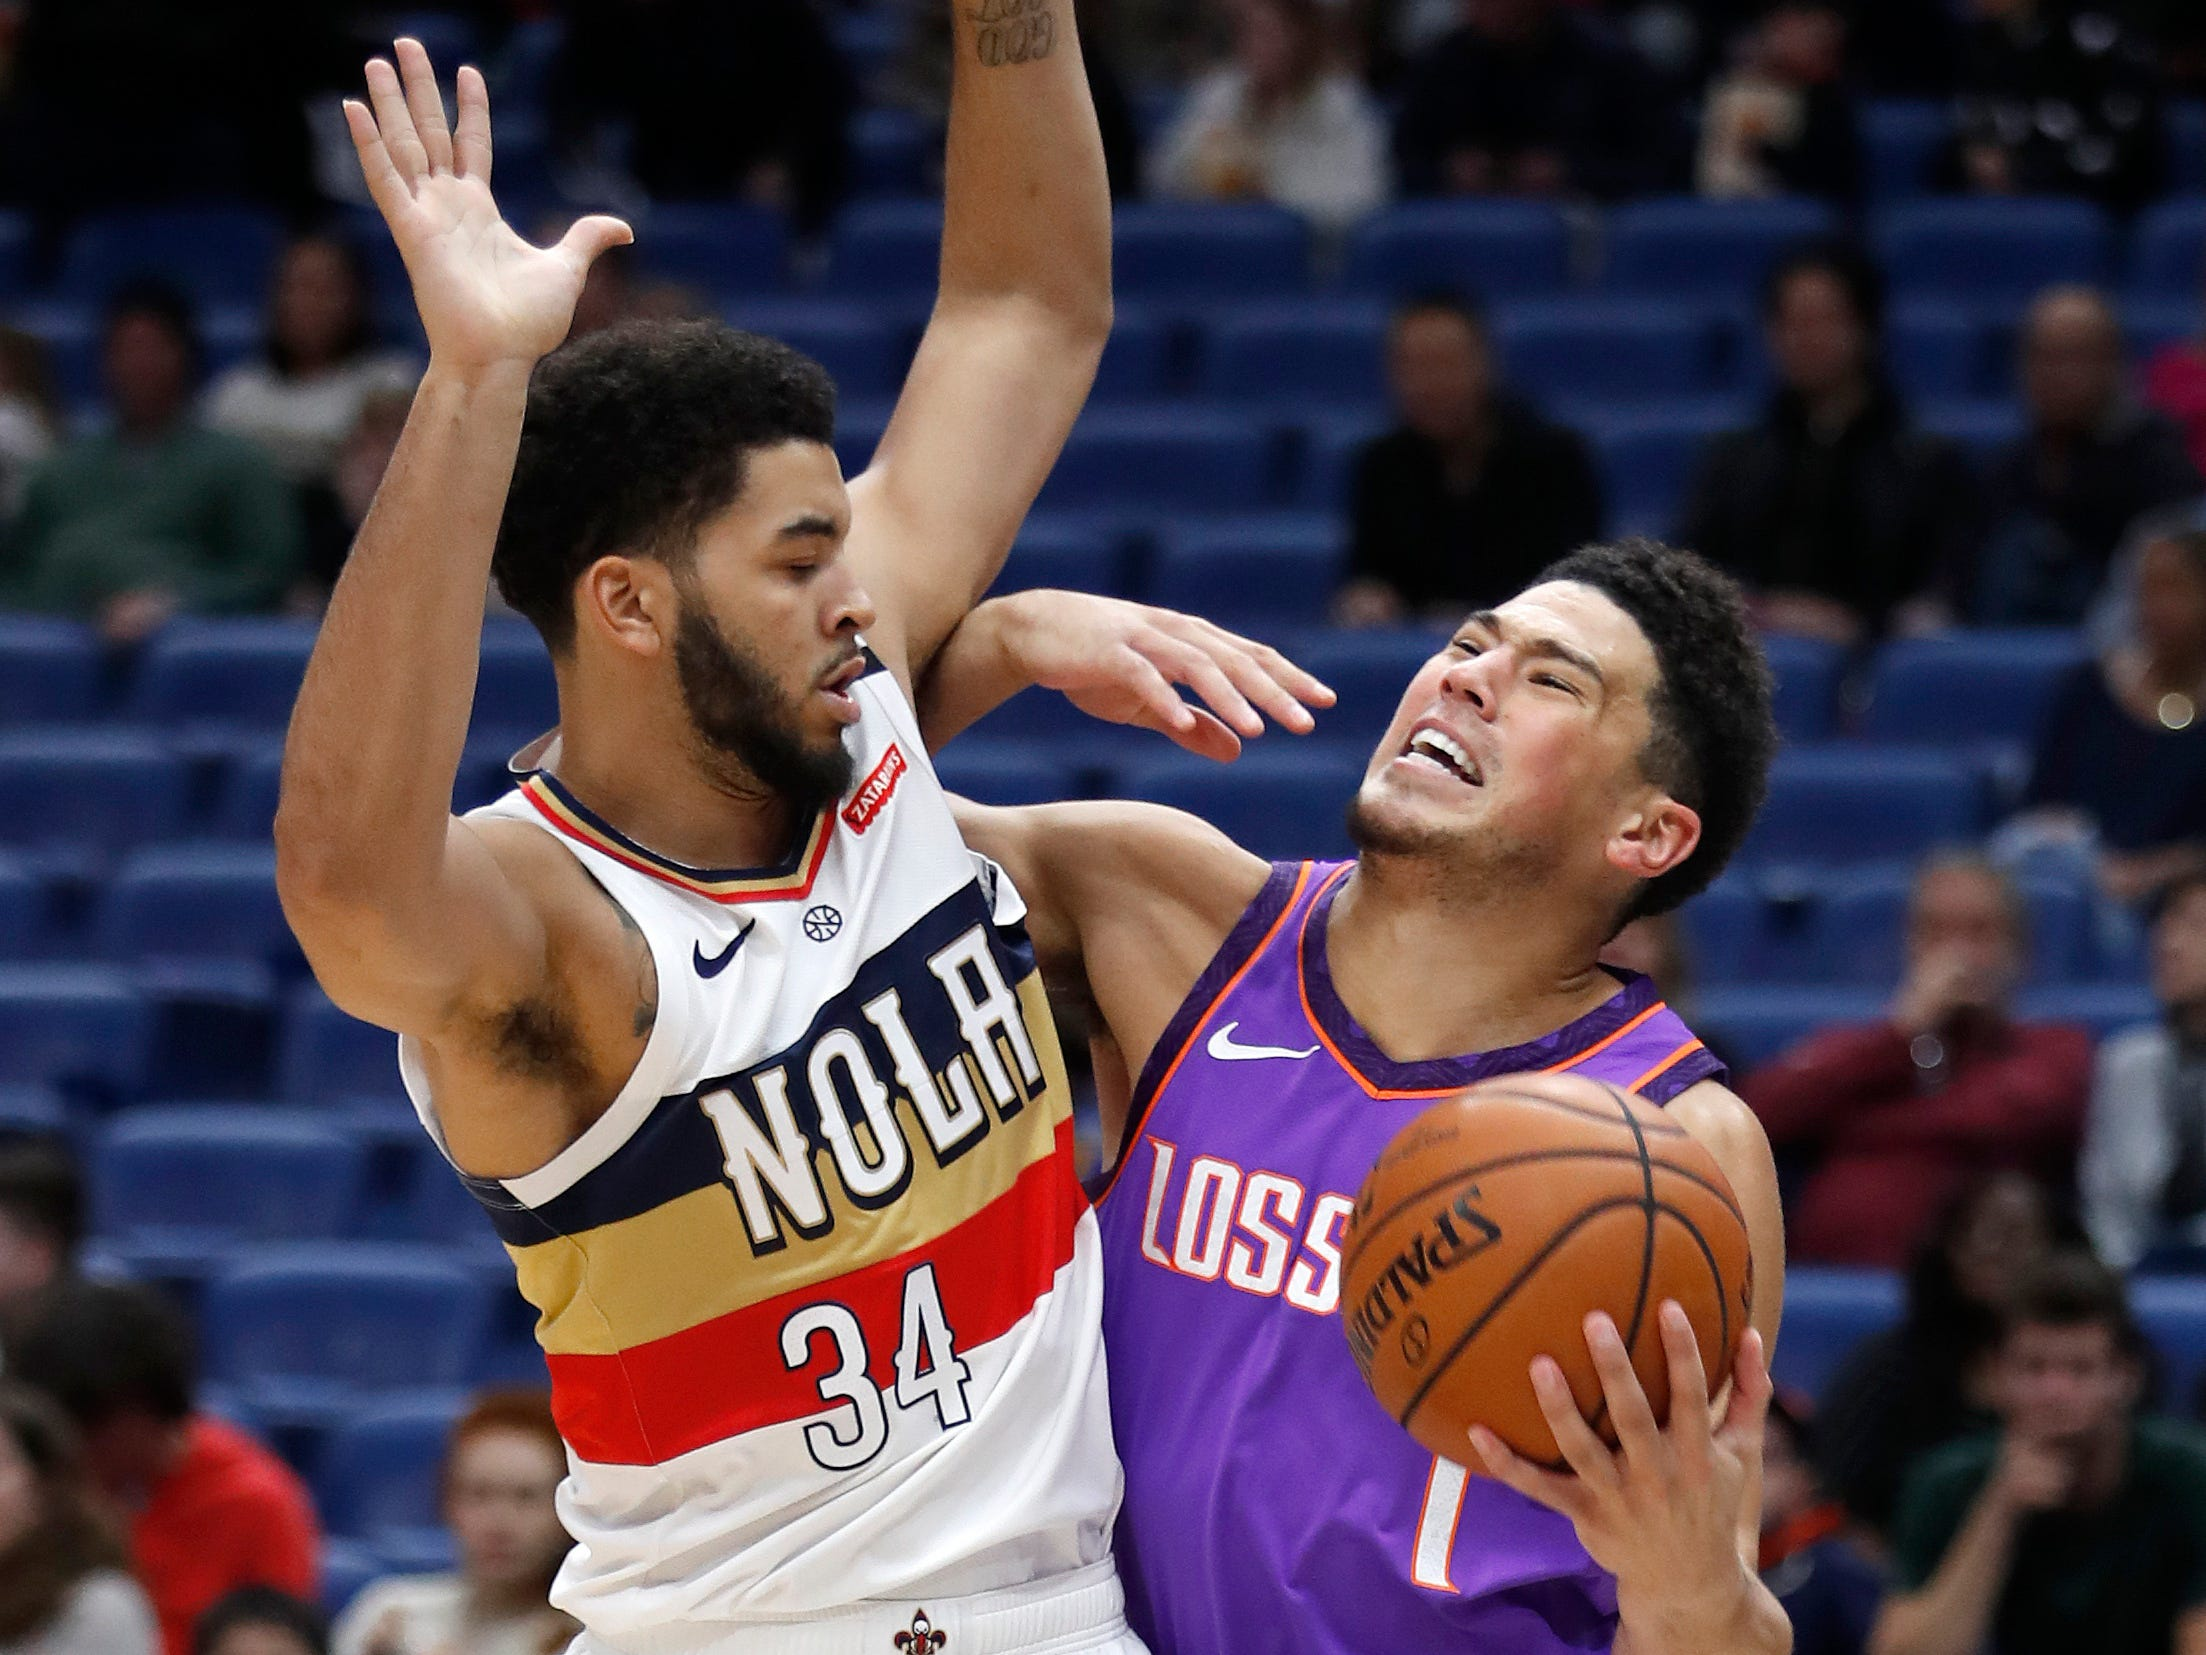 Phoenix Suns guard Devin Booker (1) is defended by New Orleans Pelicans guard Kenrich Williams (34) during the first half of an NBA basketball game in New Orleans, Saturday, March 16, 2019.